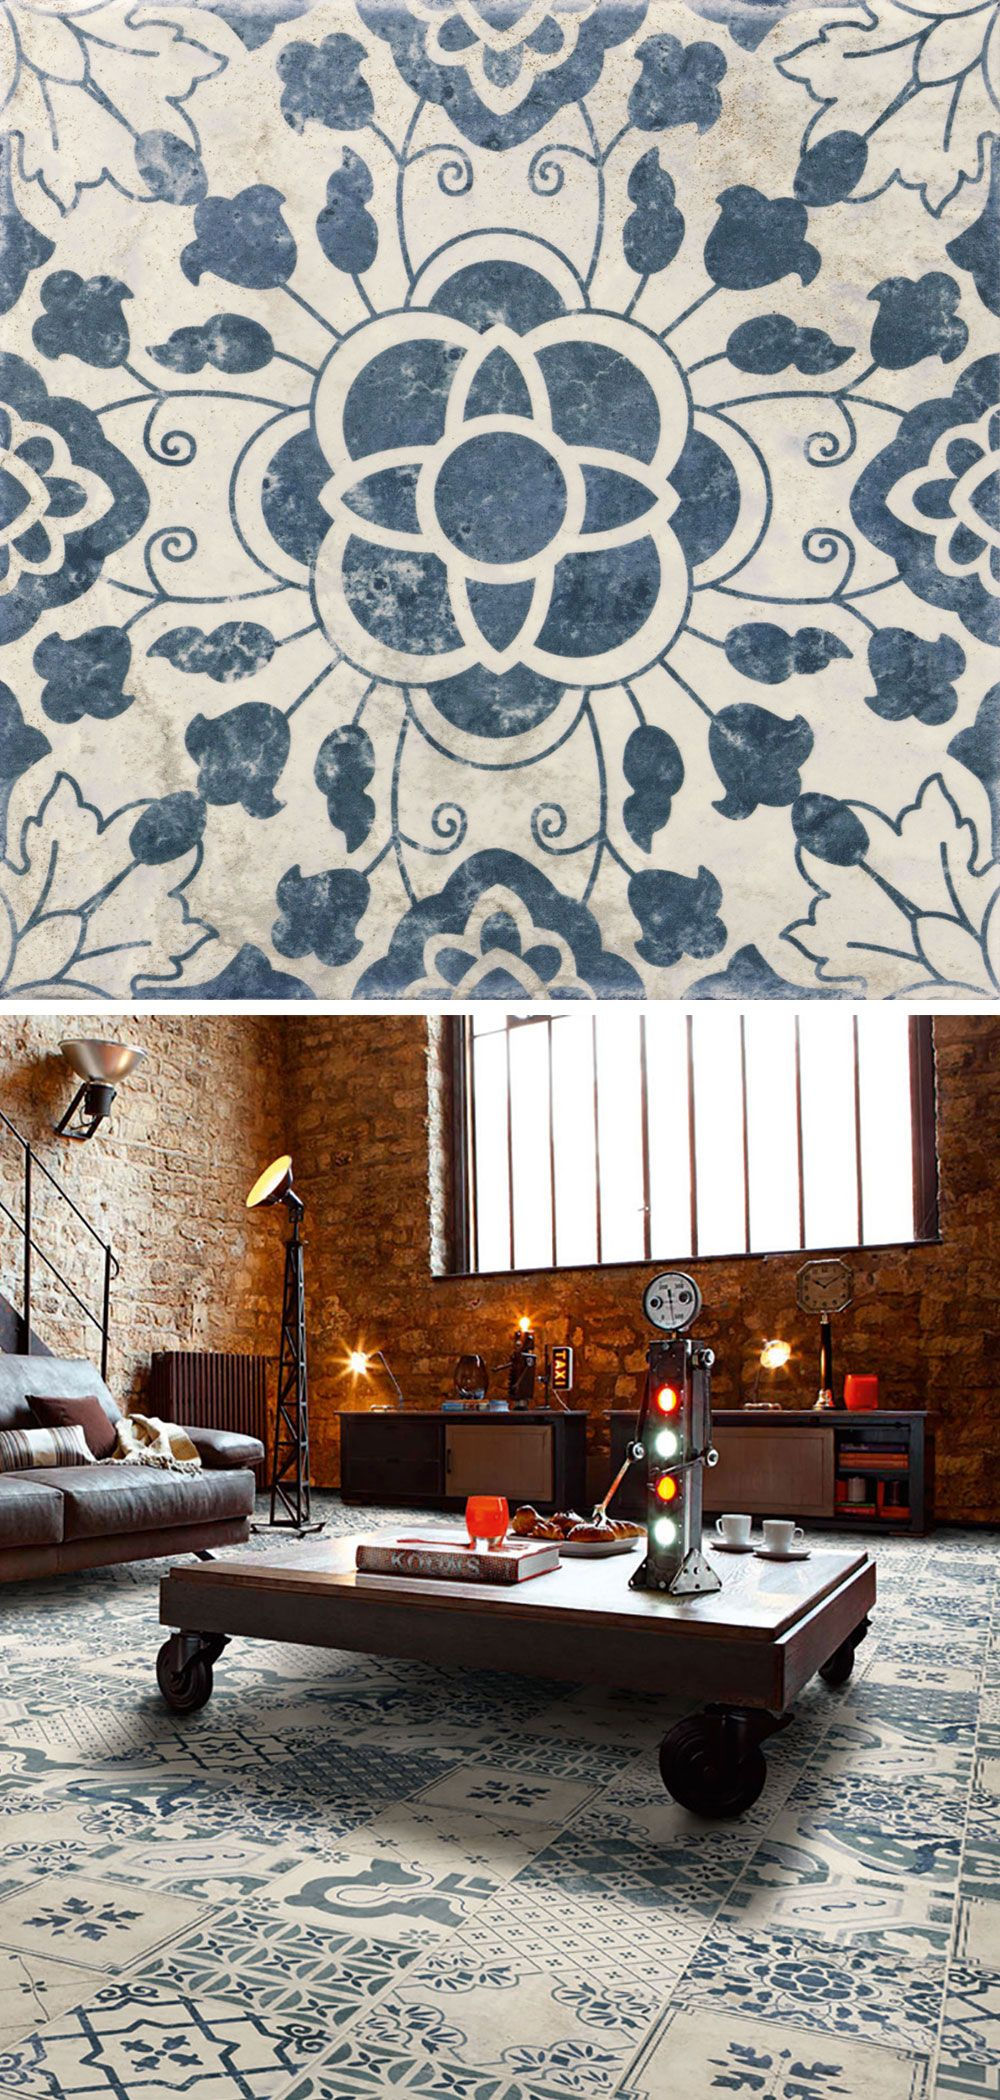 Our new range of tangier floor tile allow you to piece together a our new range of tangier floor tile allow you to piece together a truely authentic moroccan dailygadgetfo Image collections